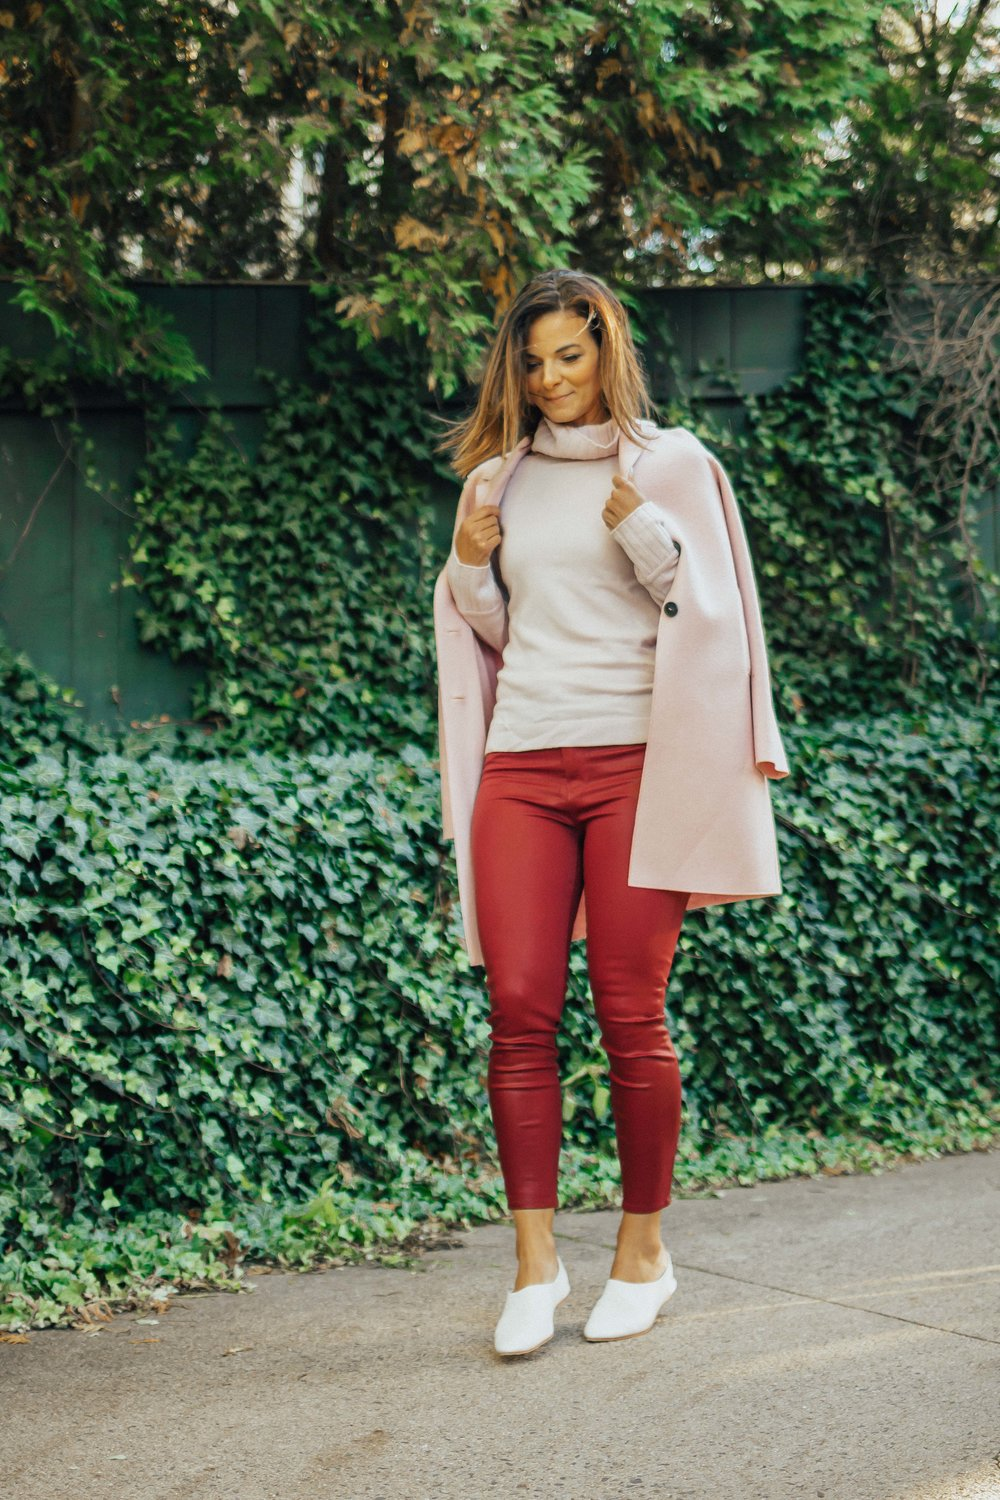 SHOP THE LOOK - PINK COATPINK TURTLE NECK SWEATER (similar)BURGUNDY PANTS (similar)WHITE FLATS